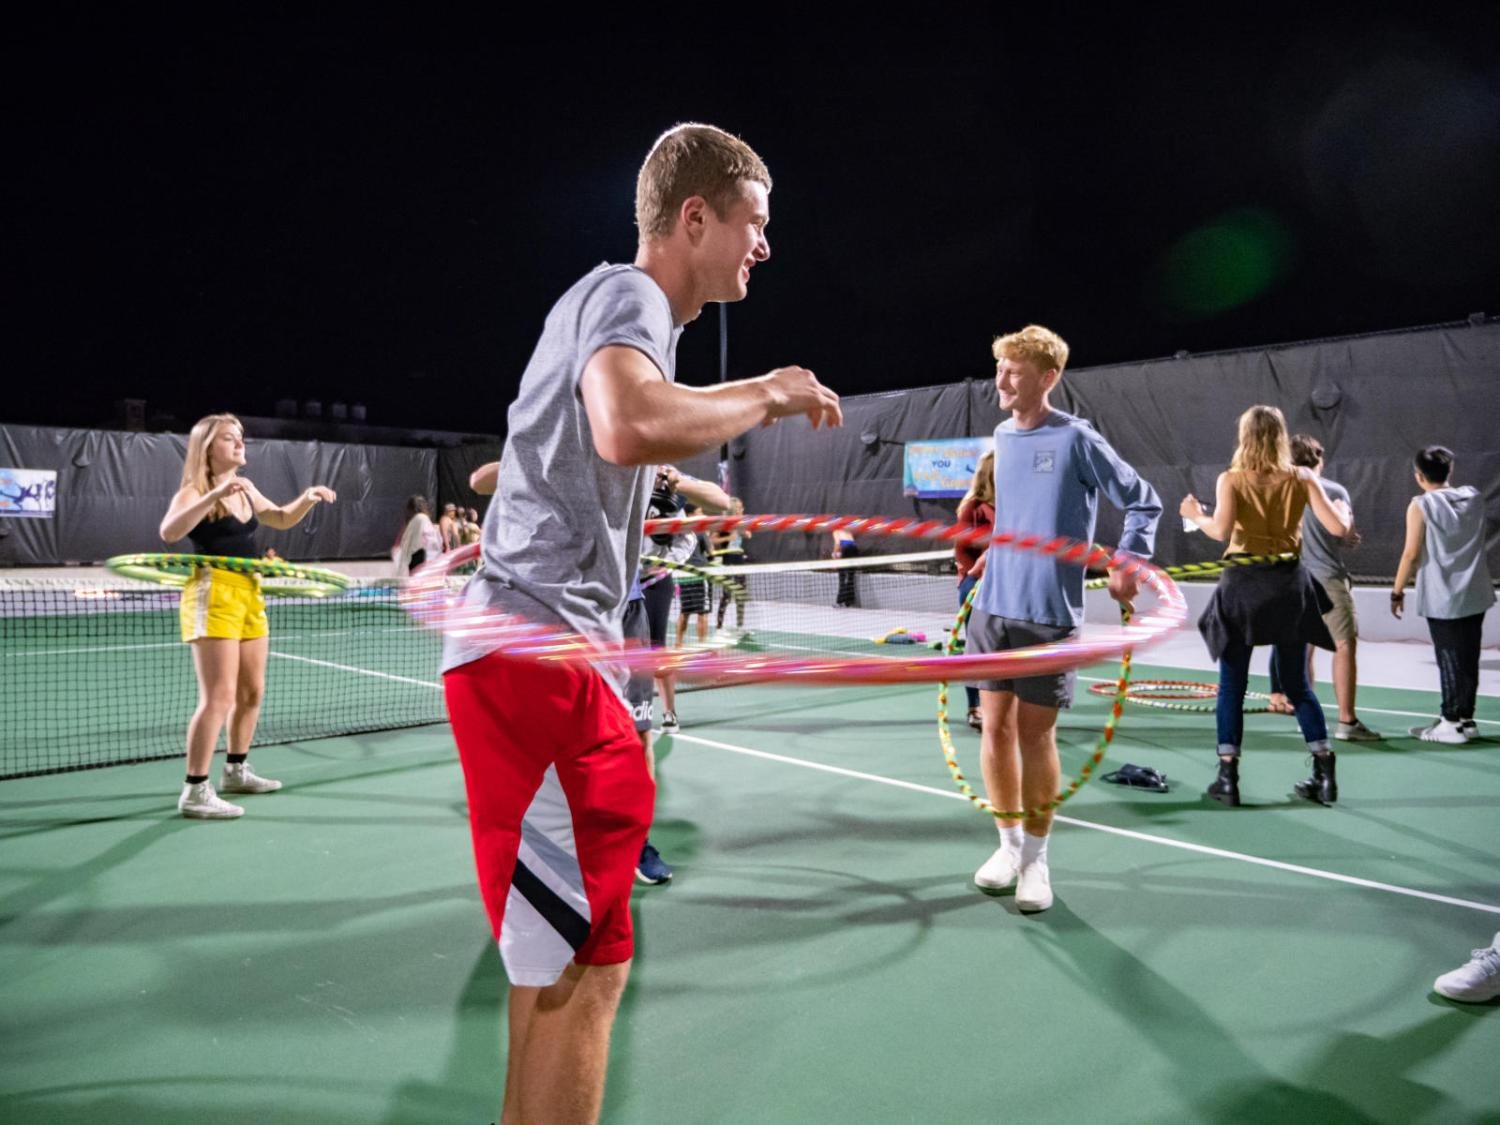 Students hula hooping outside on campus